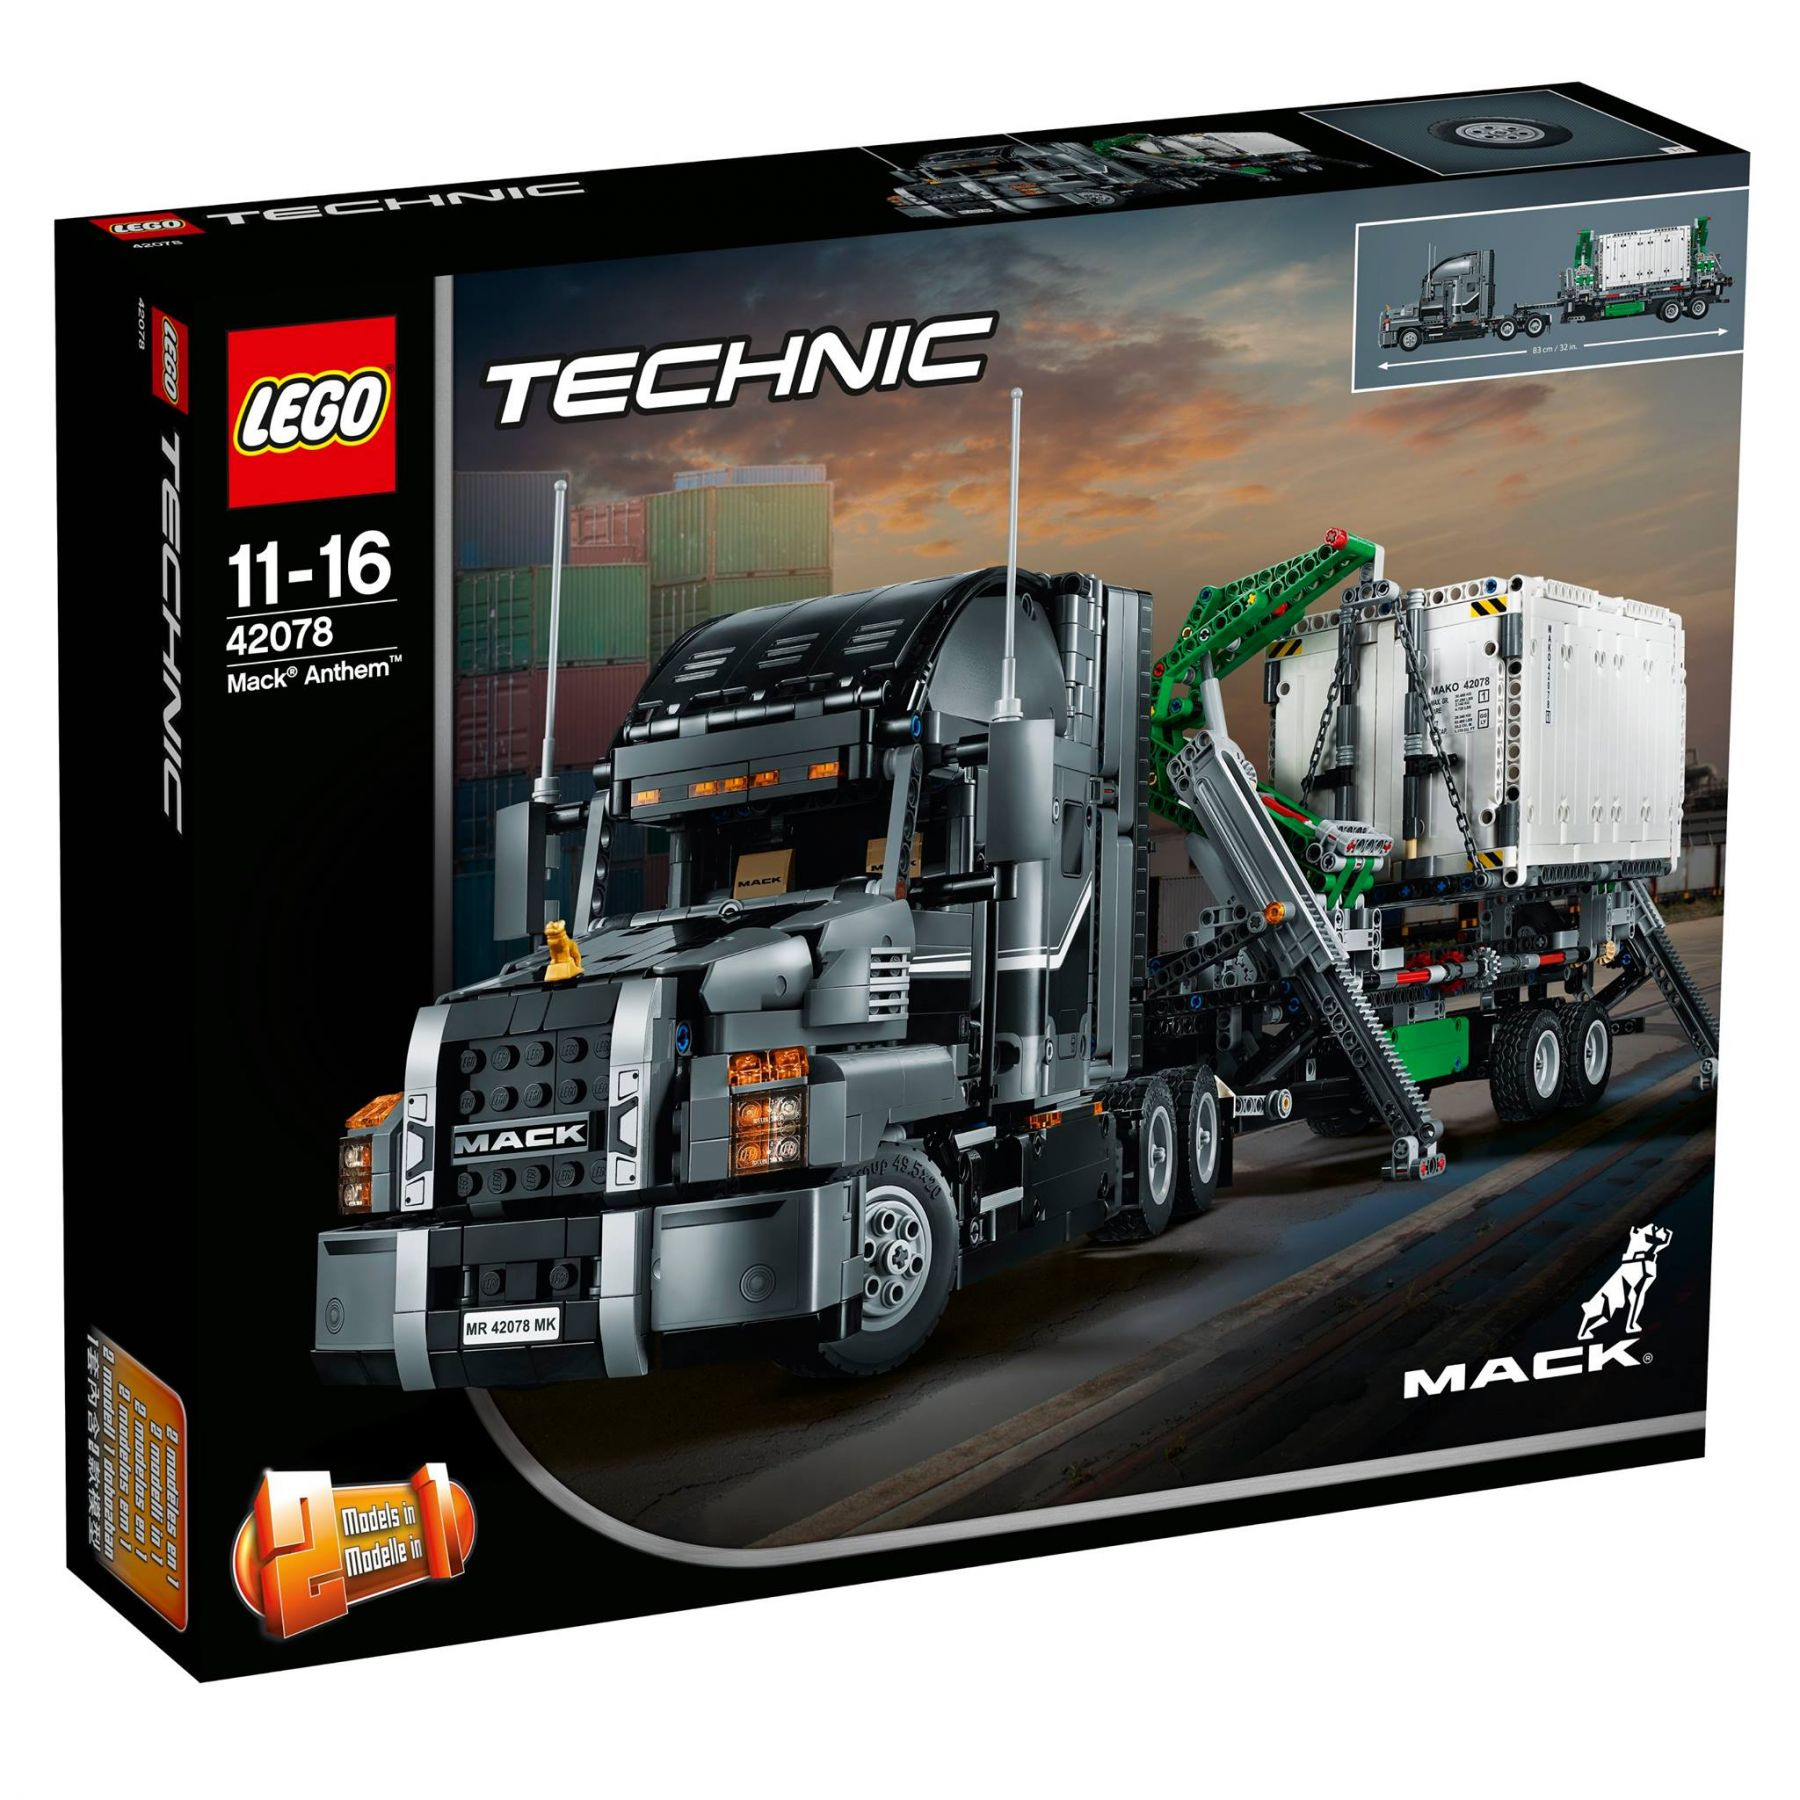 LEGO Technic 42078 Mack Anthem lego-technic-42078-1_mack-anthem.jpg